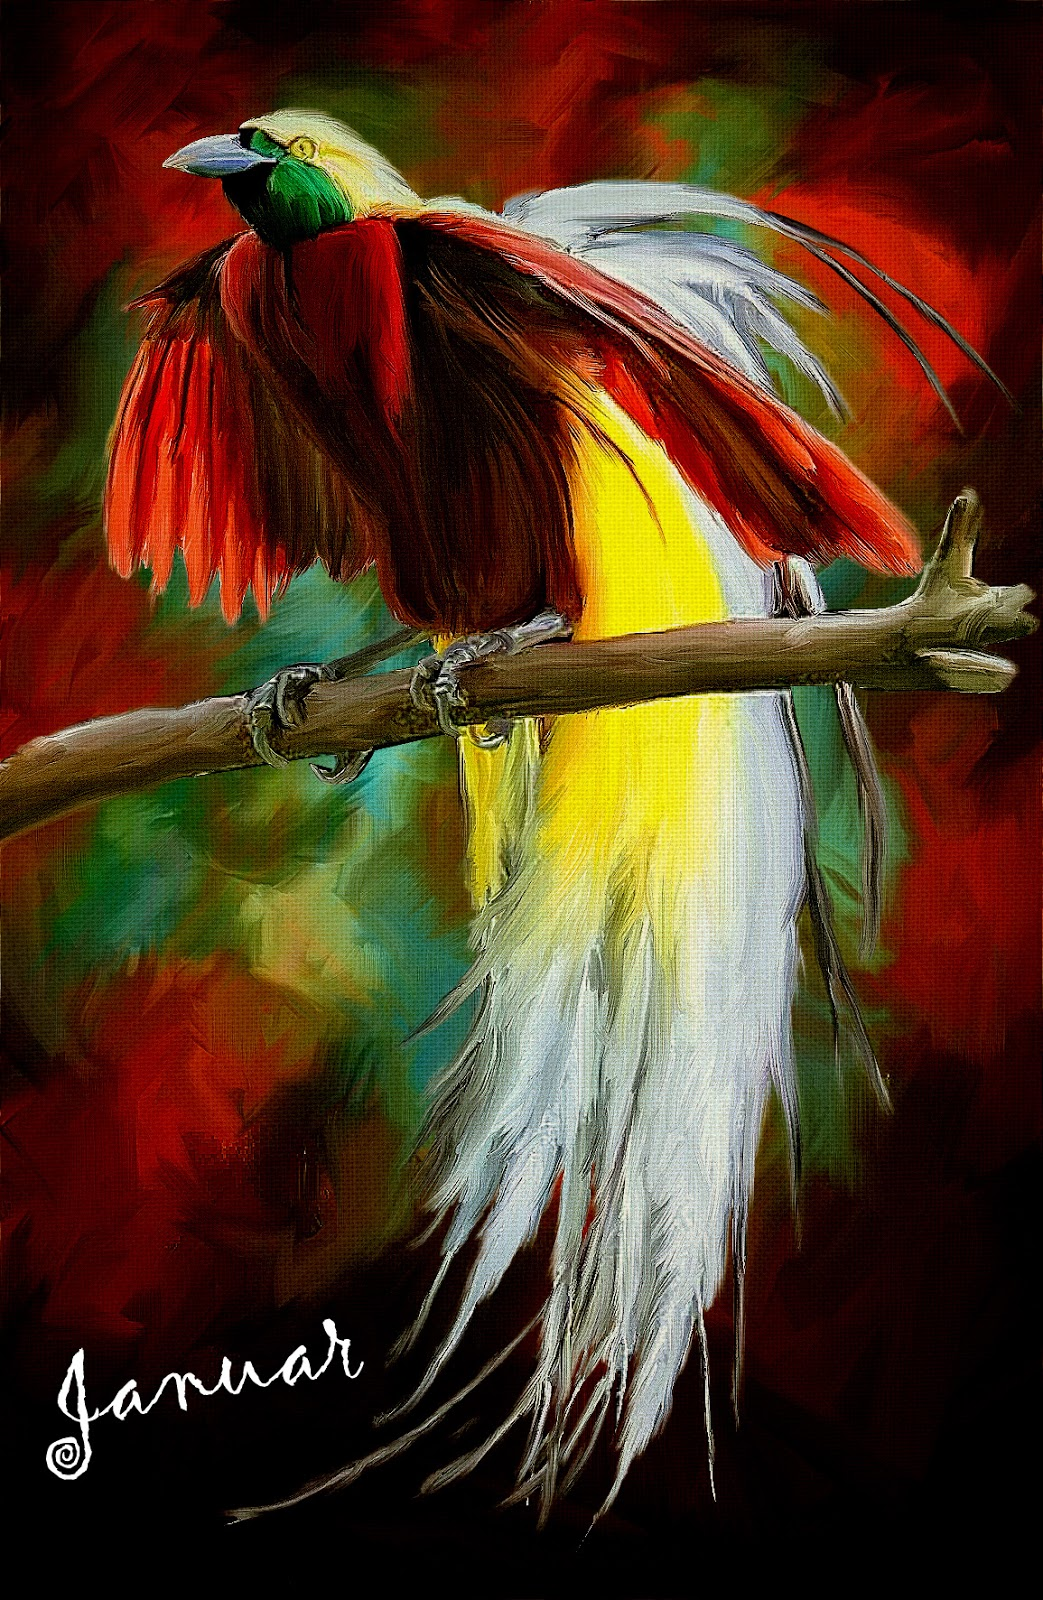 Cendrawasih on Oil Painting,Burung Cendrawasih, Cendrawasih Bird